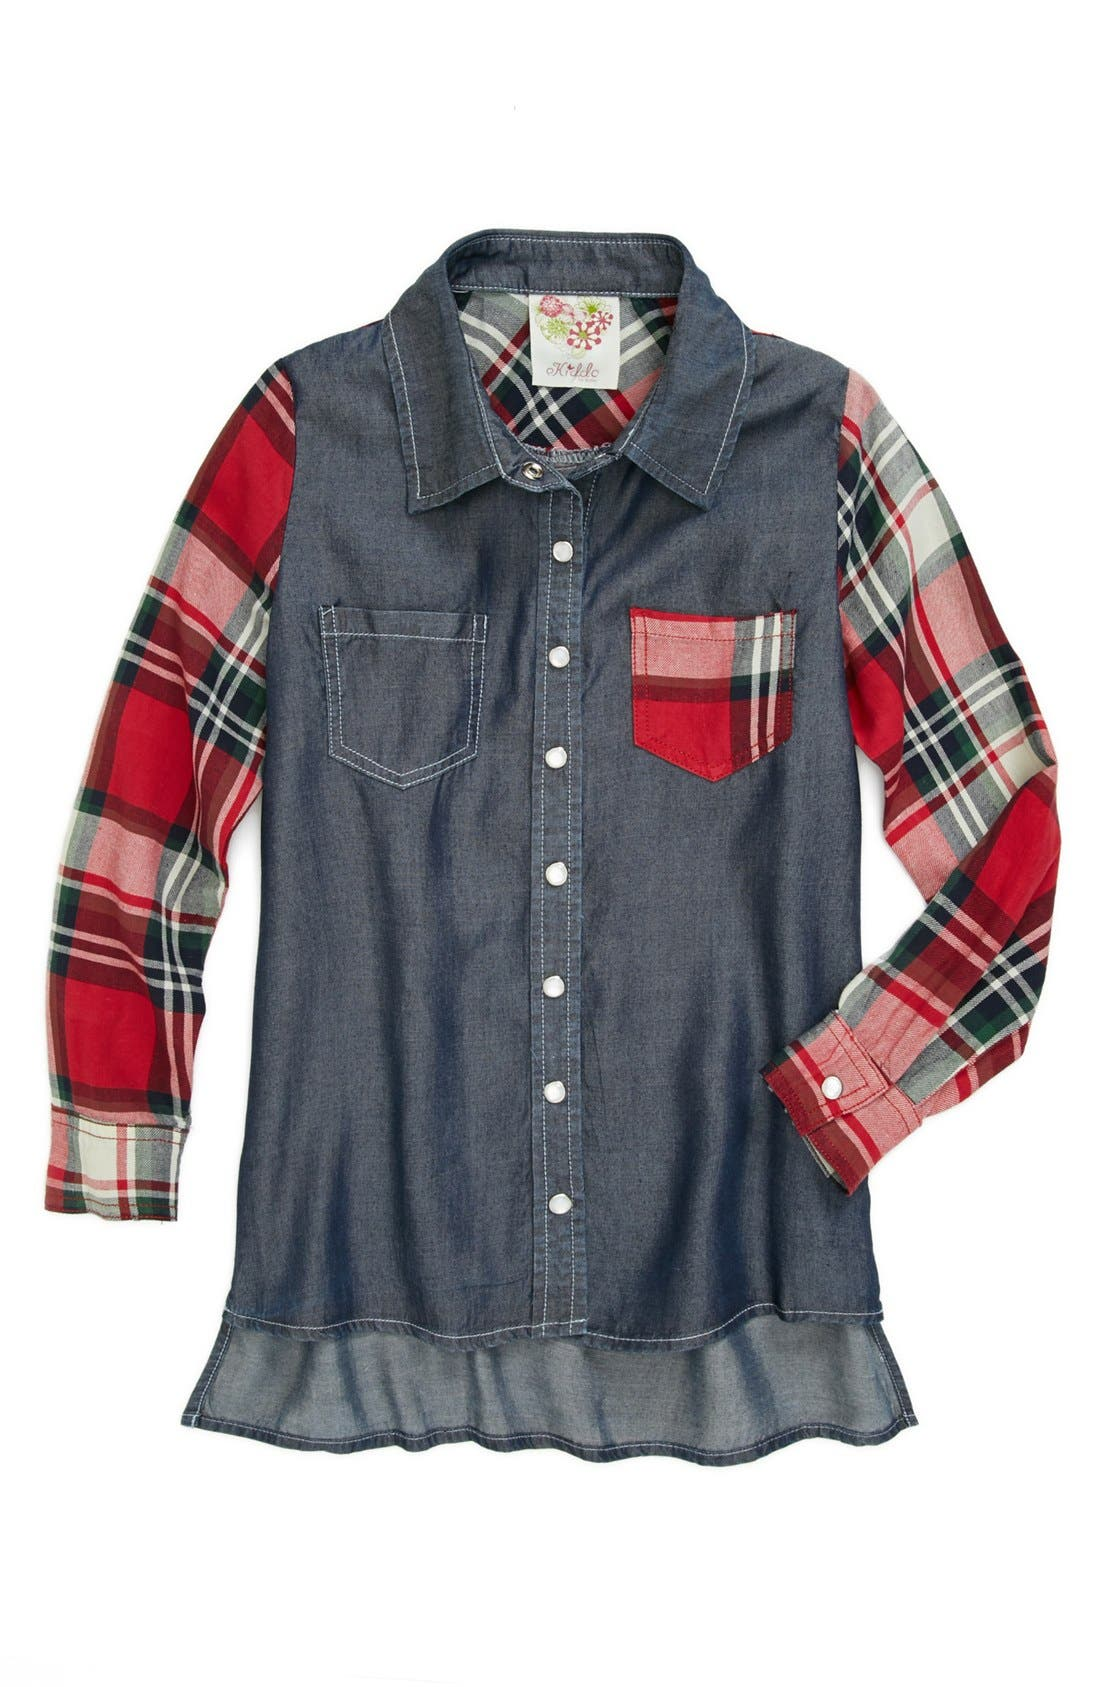 Alternate Image 1 Selected - Kiddo Denim & Plaid Top (Big Girls)